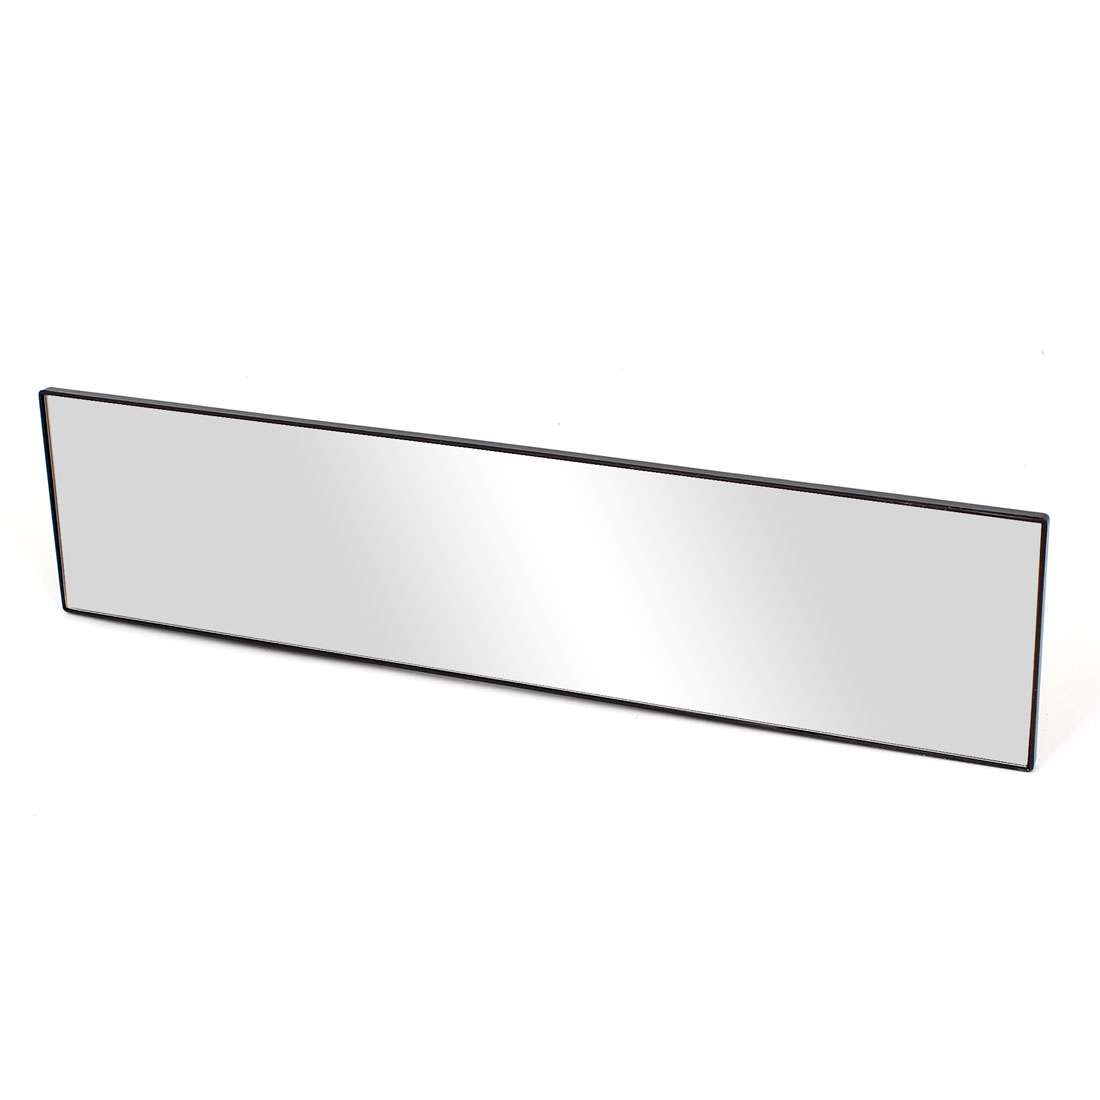 Vehicle Auto Car Interior Flat White Wide Angle Rear View Mirror Glass 300mm